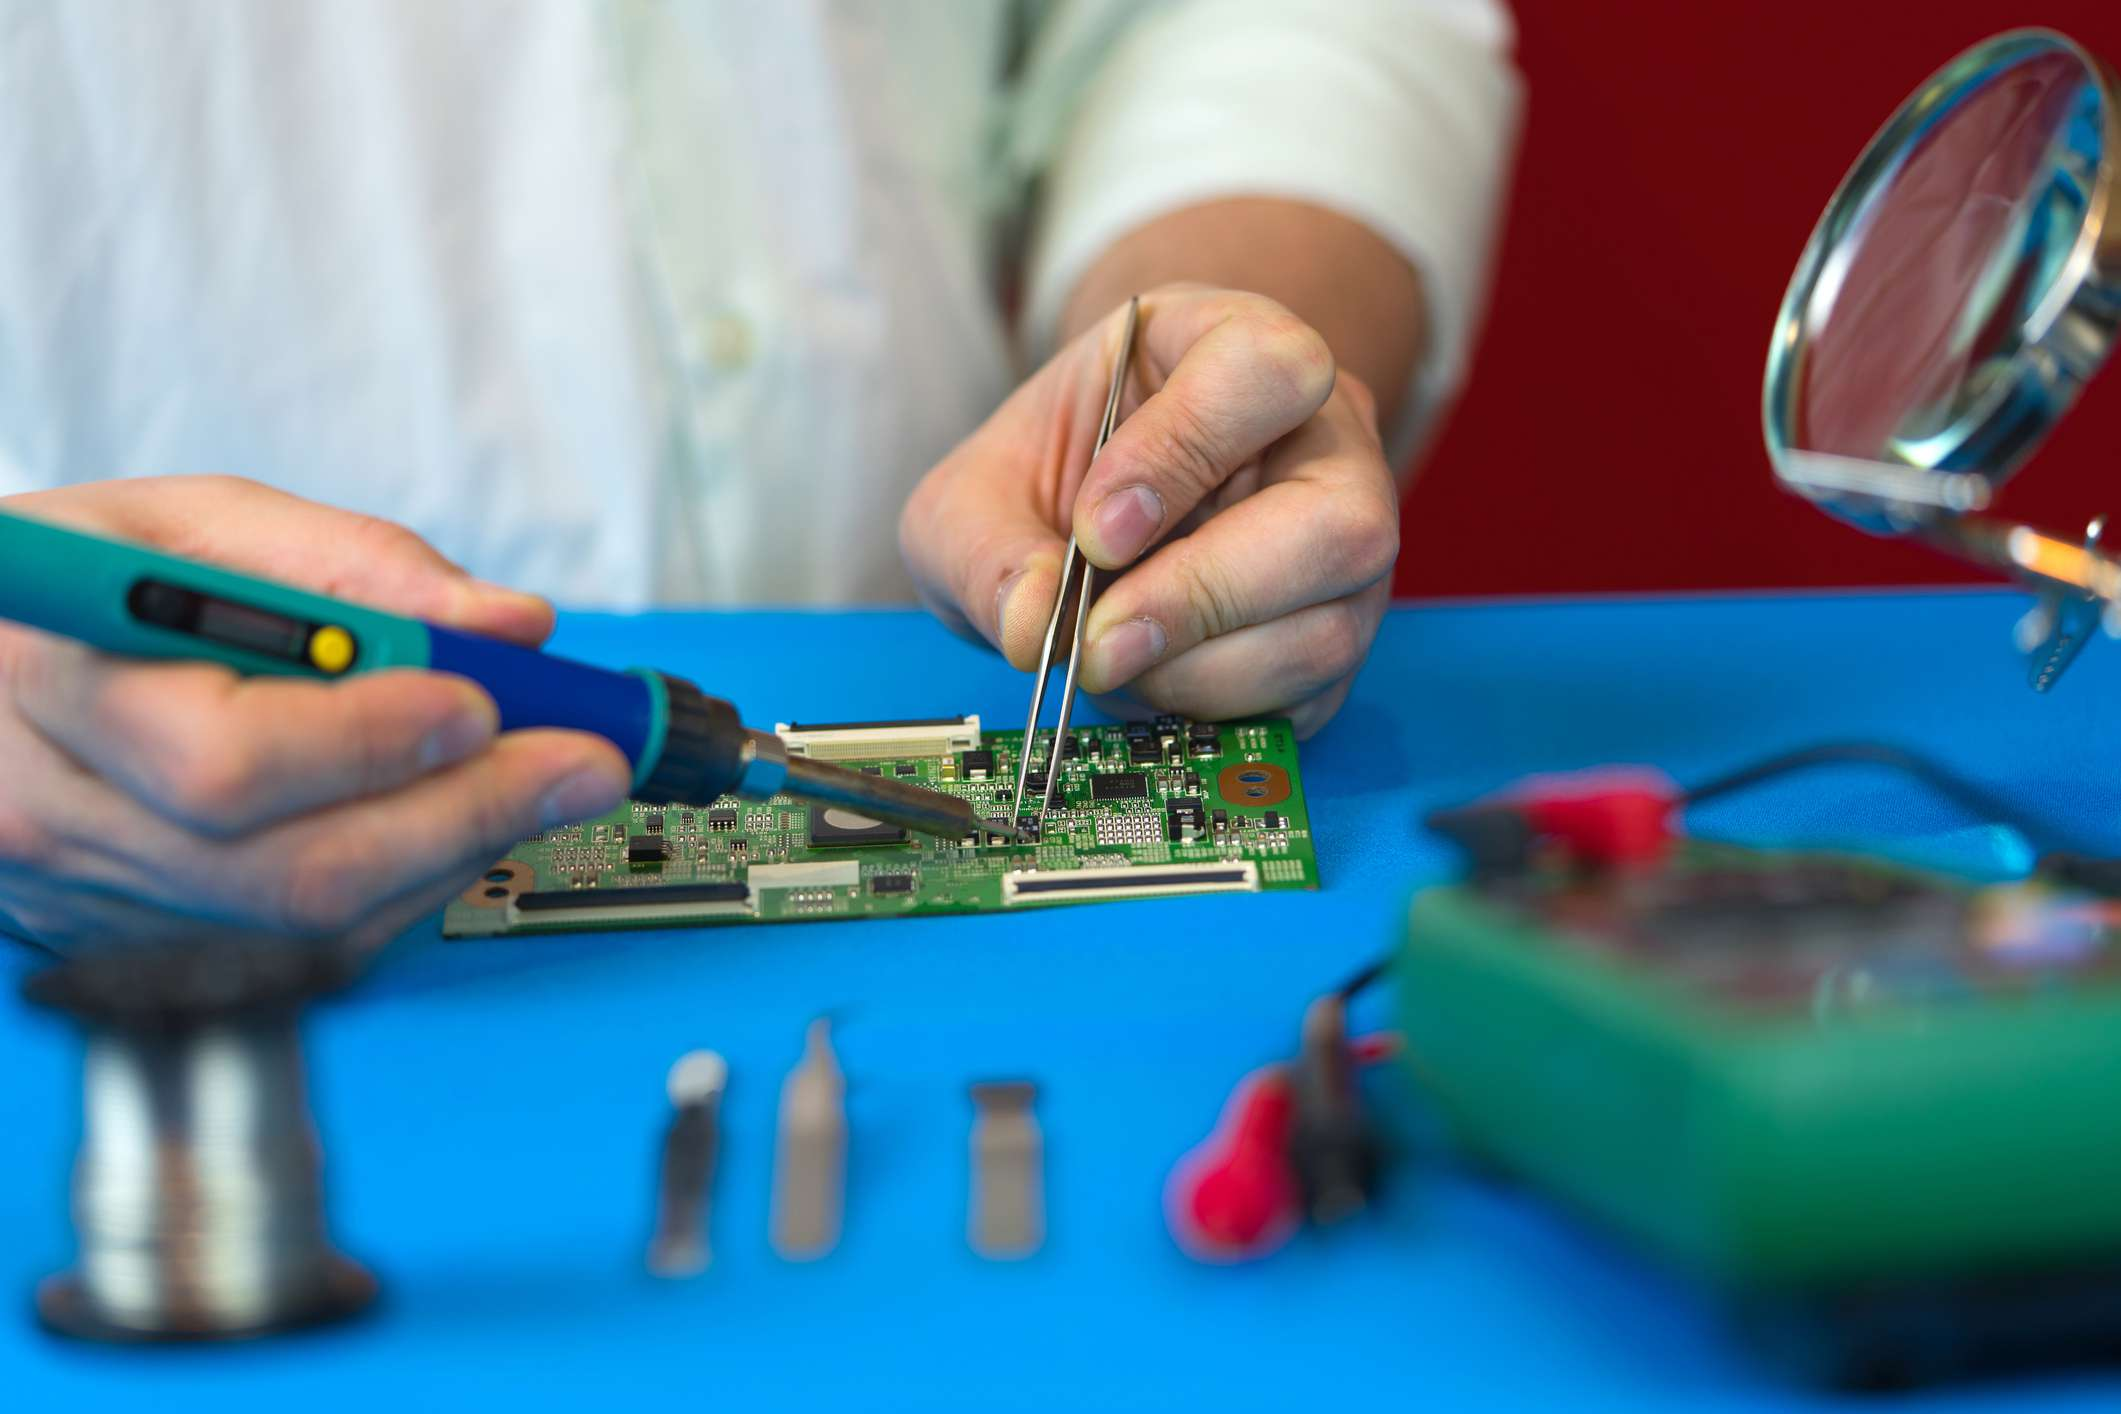 Close up of hands soldering on computer component